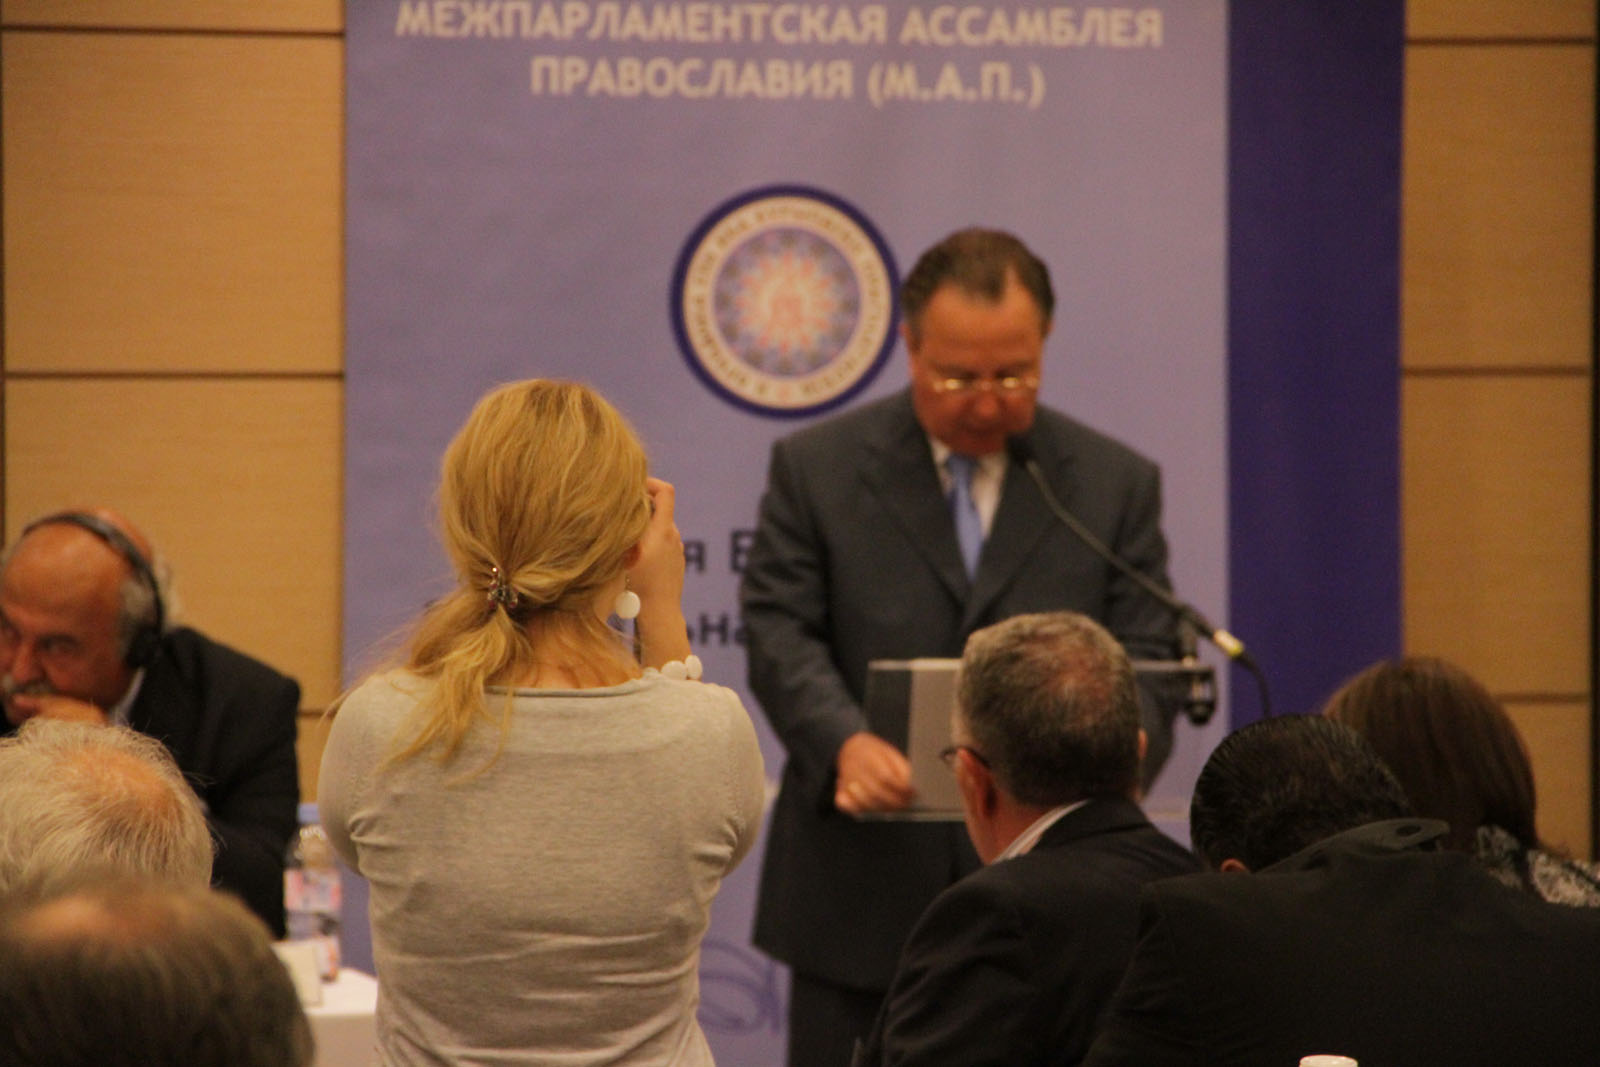 EIAO Paris - 18th Annual Interparliamentary Assembly on Orthodoxy